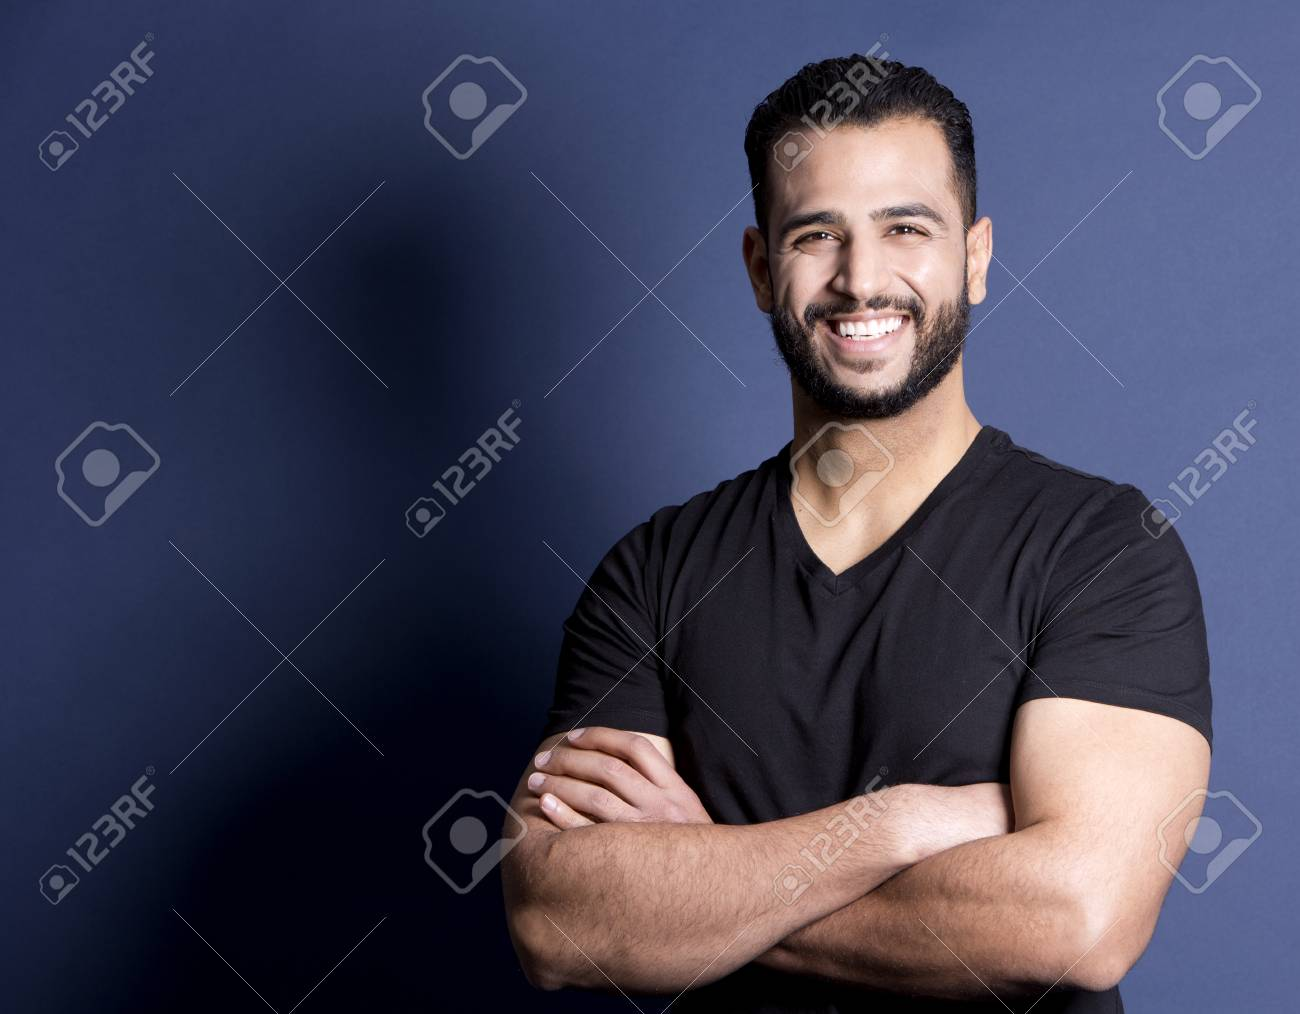 east asian handsome man wearing black tshirt and jeans - 56911619